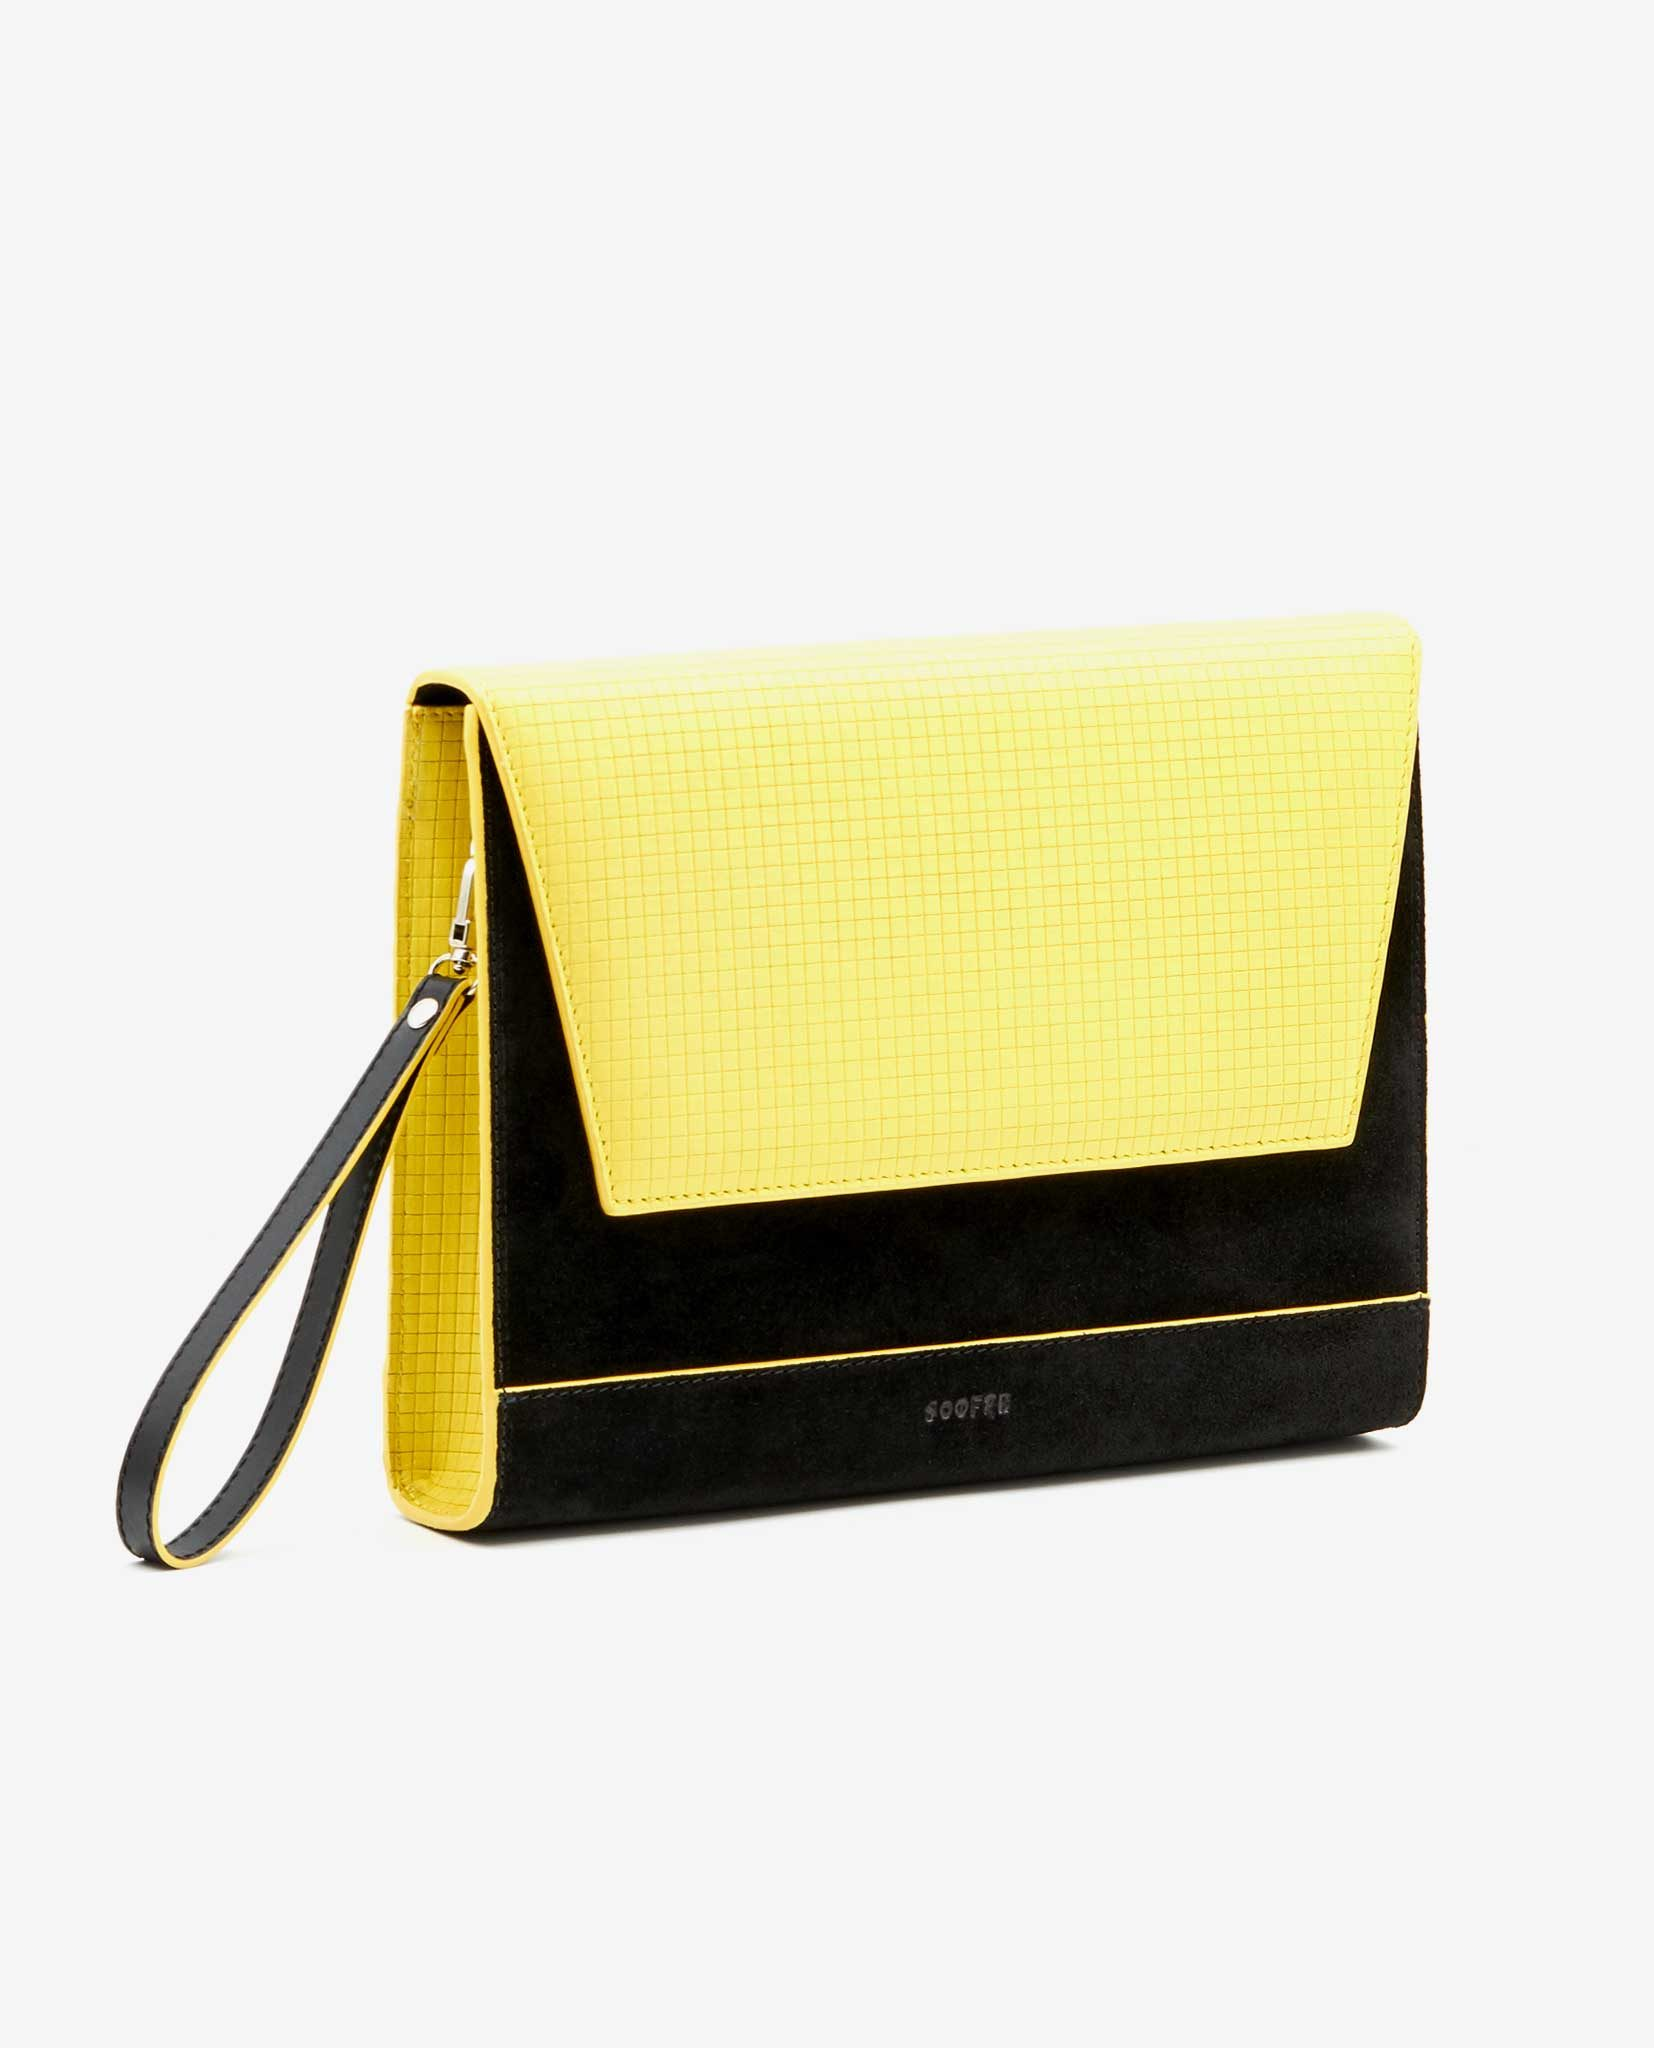 SOOFRE Berlin unique Clutch squared yellow / black